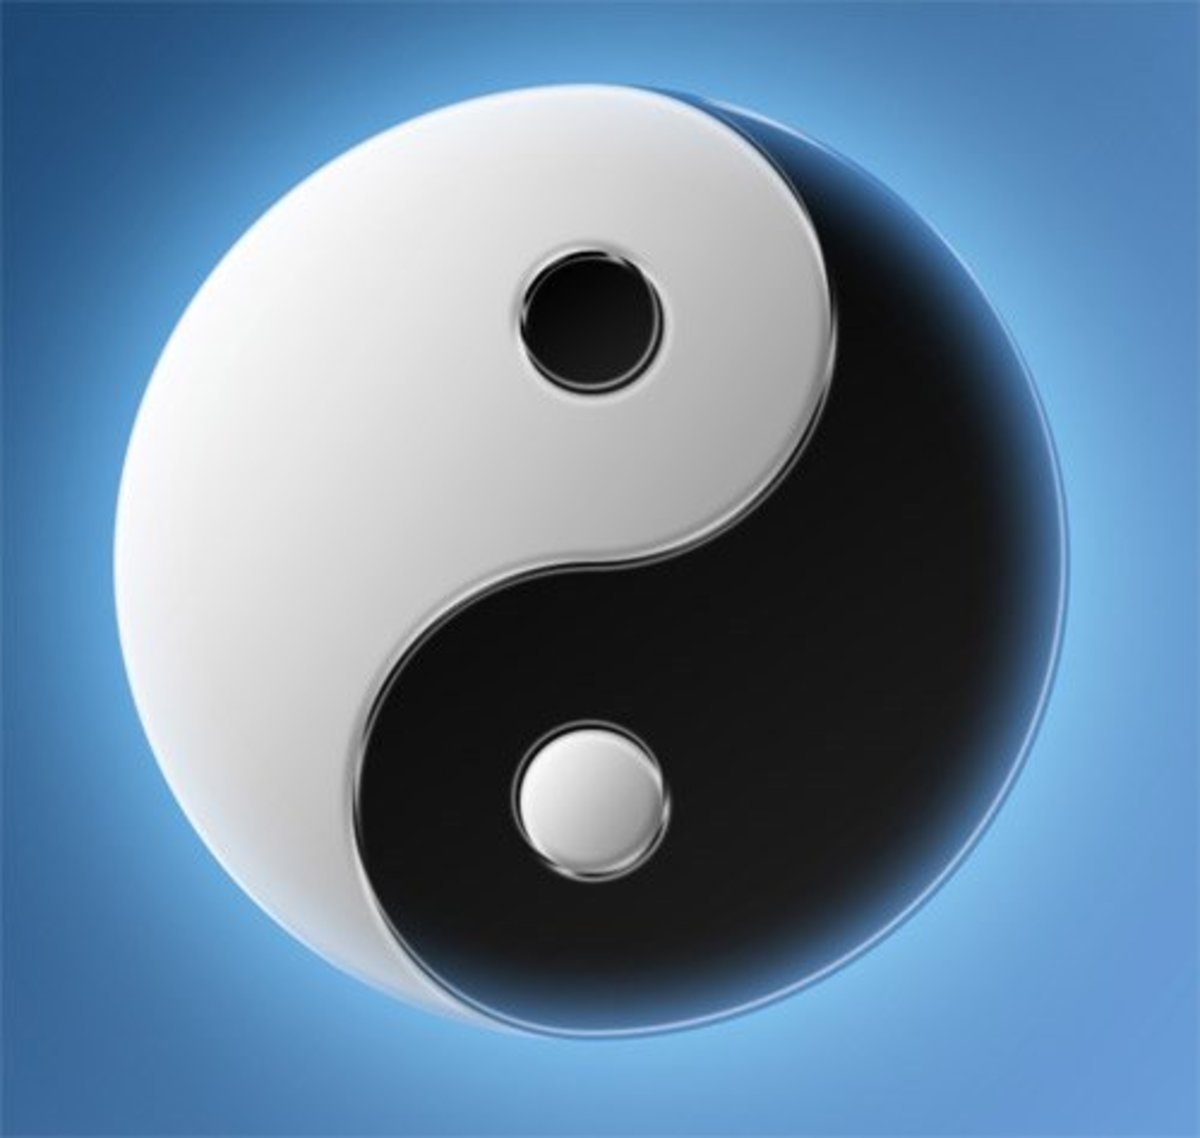 yin (+) and yang (-) provide the basis for I Ching readings.